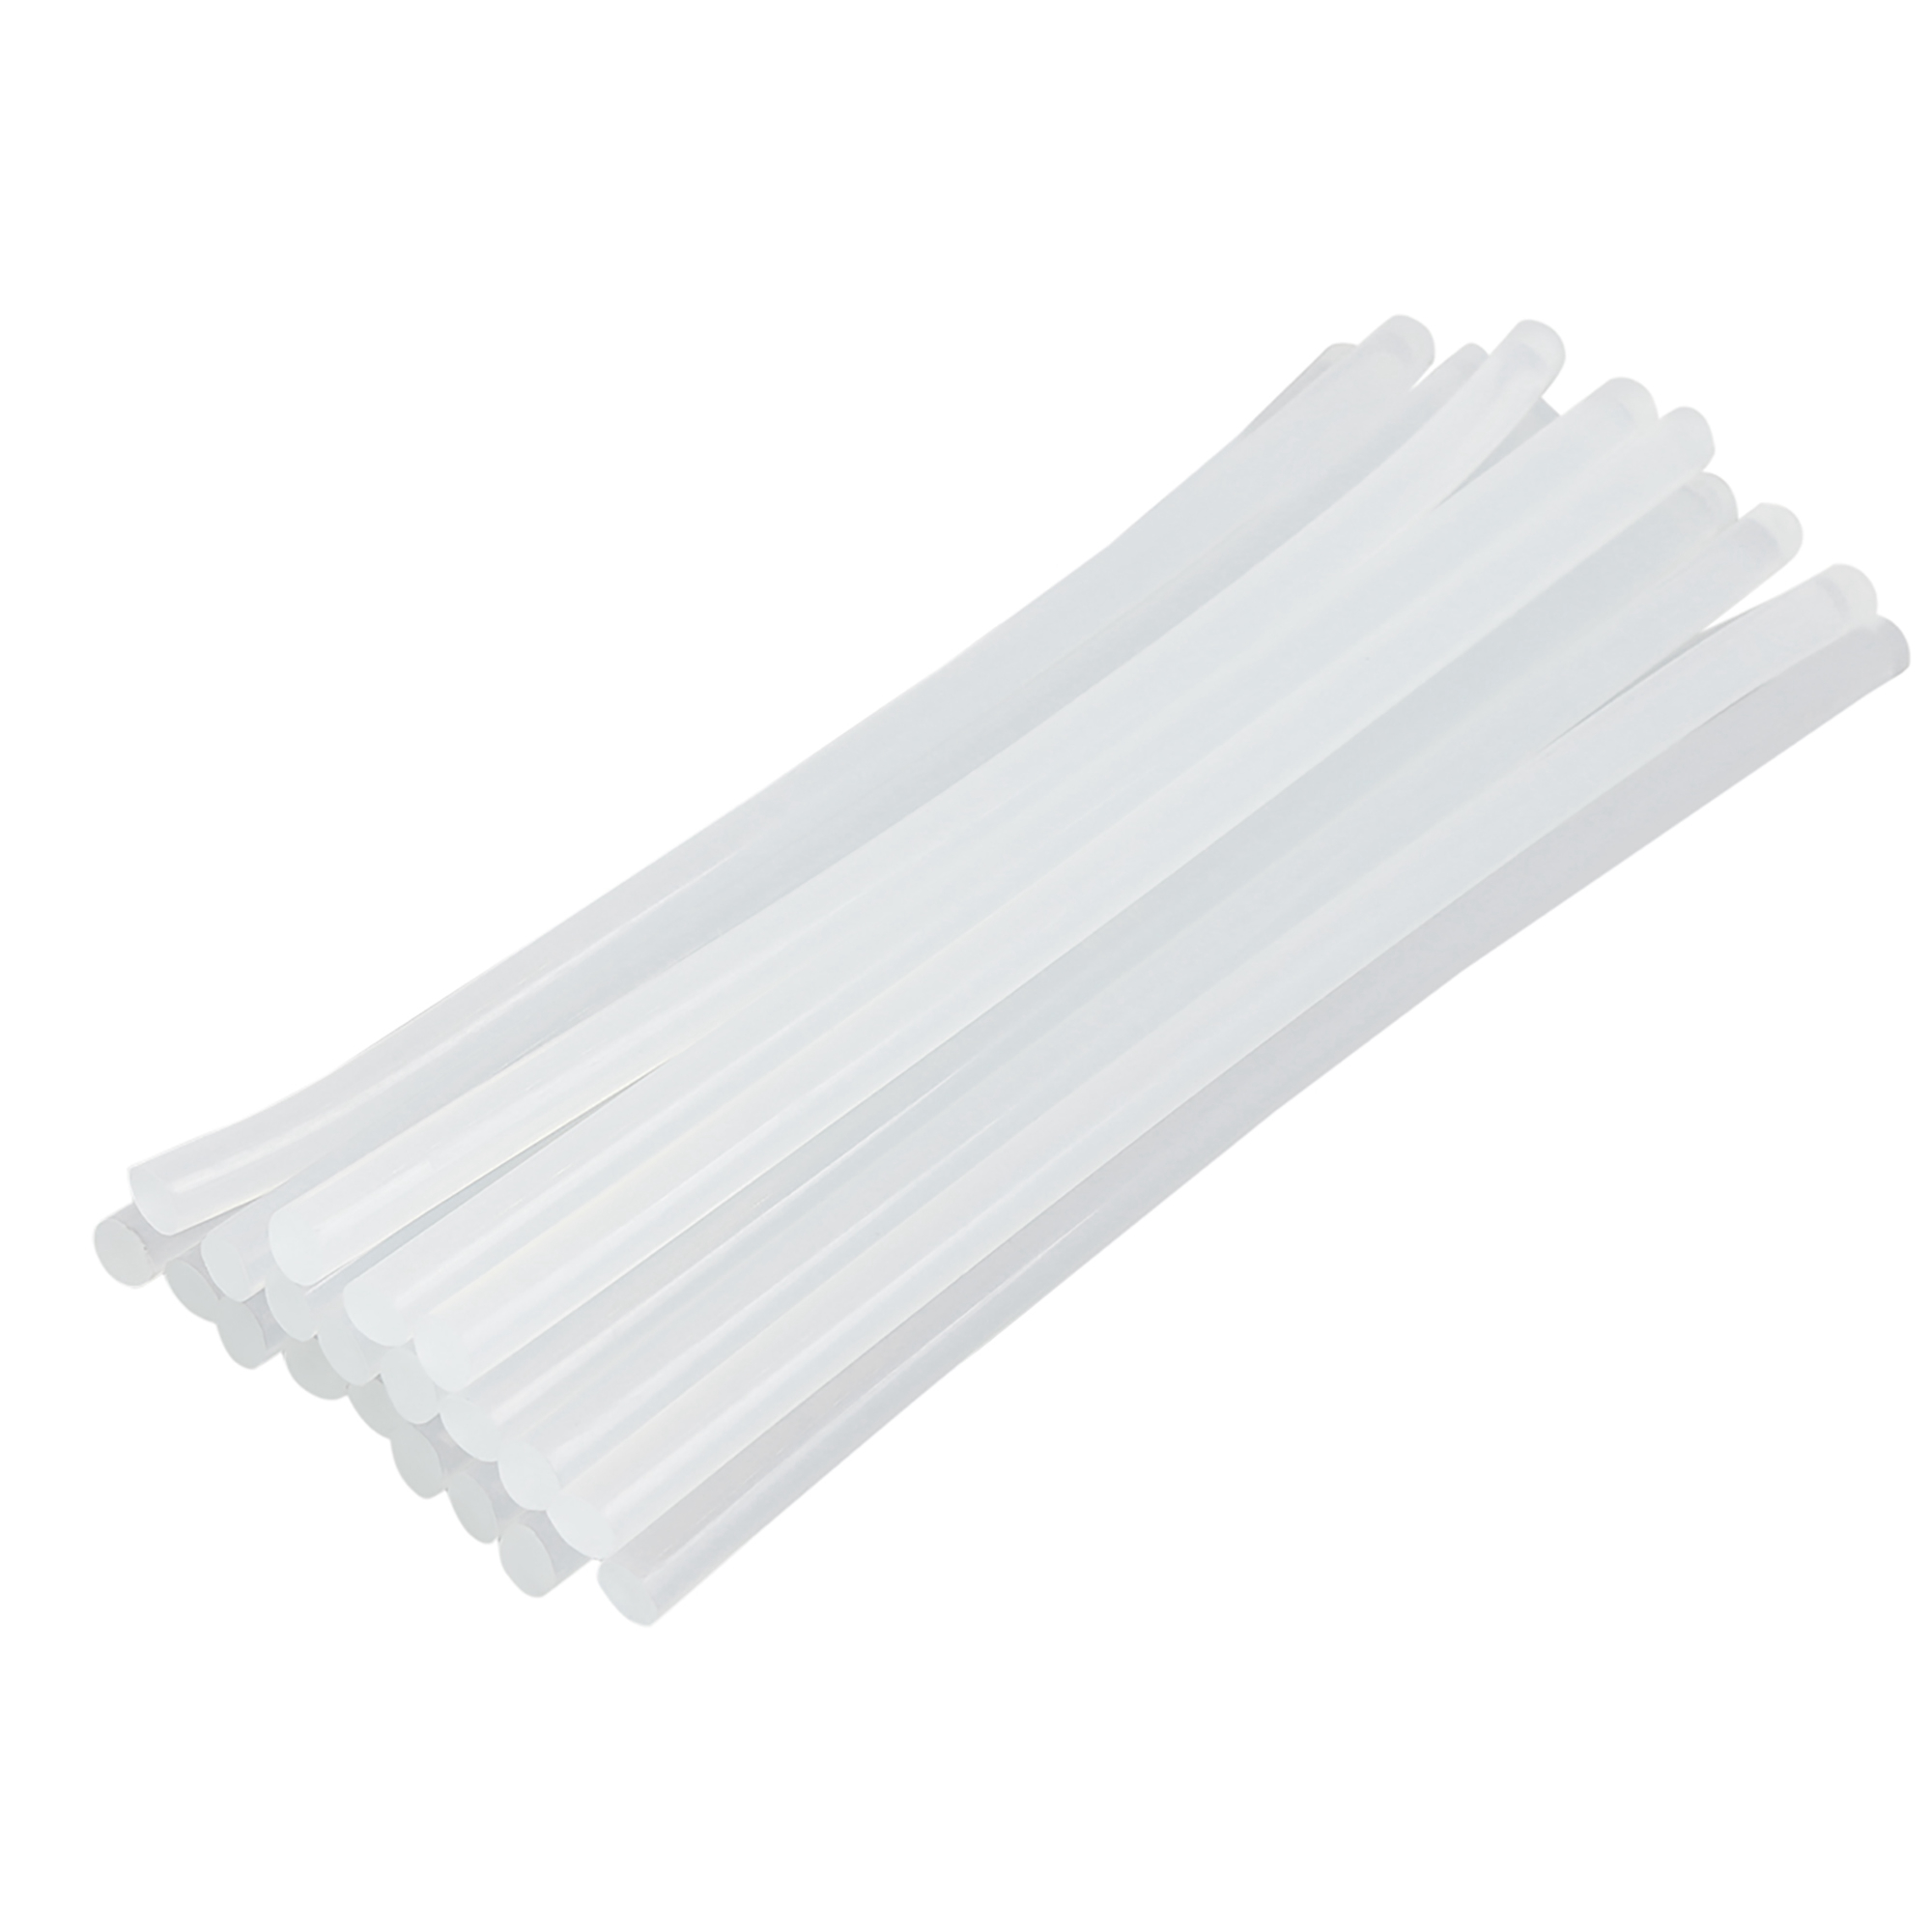 20 Pcs 7mm x 200mm Clear Paintless Dent Repair Hot Melt Glue Sticks for Car